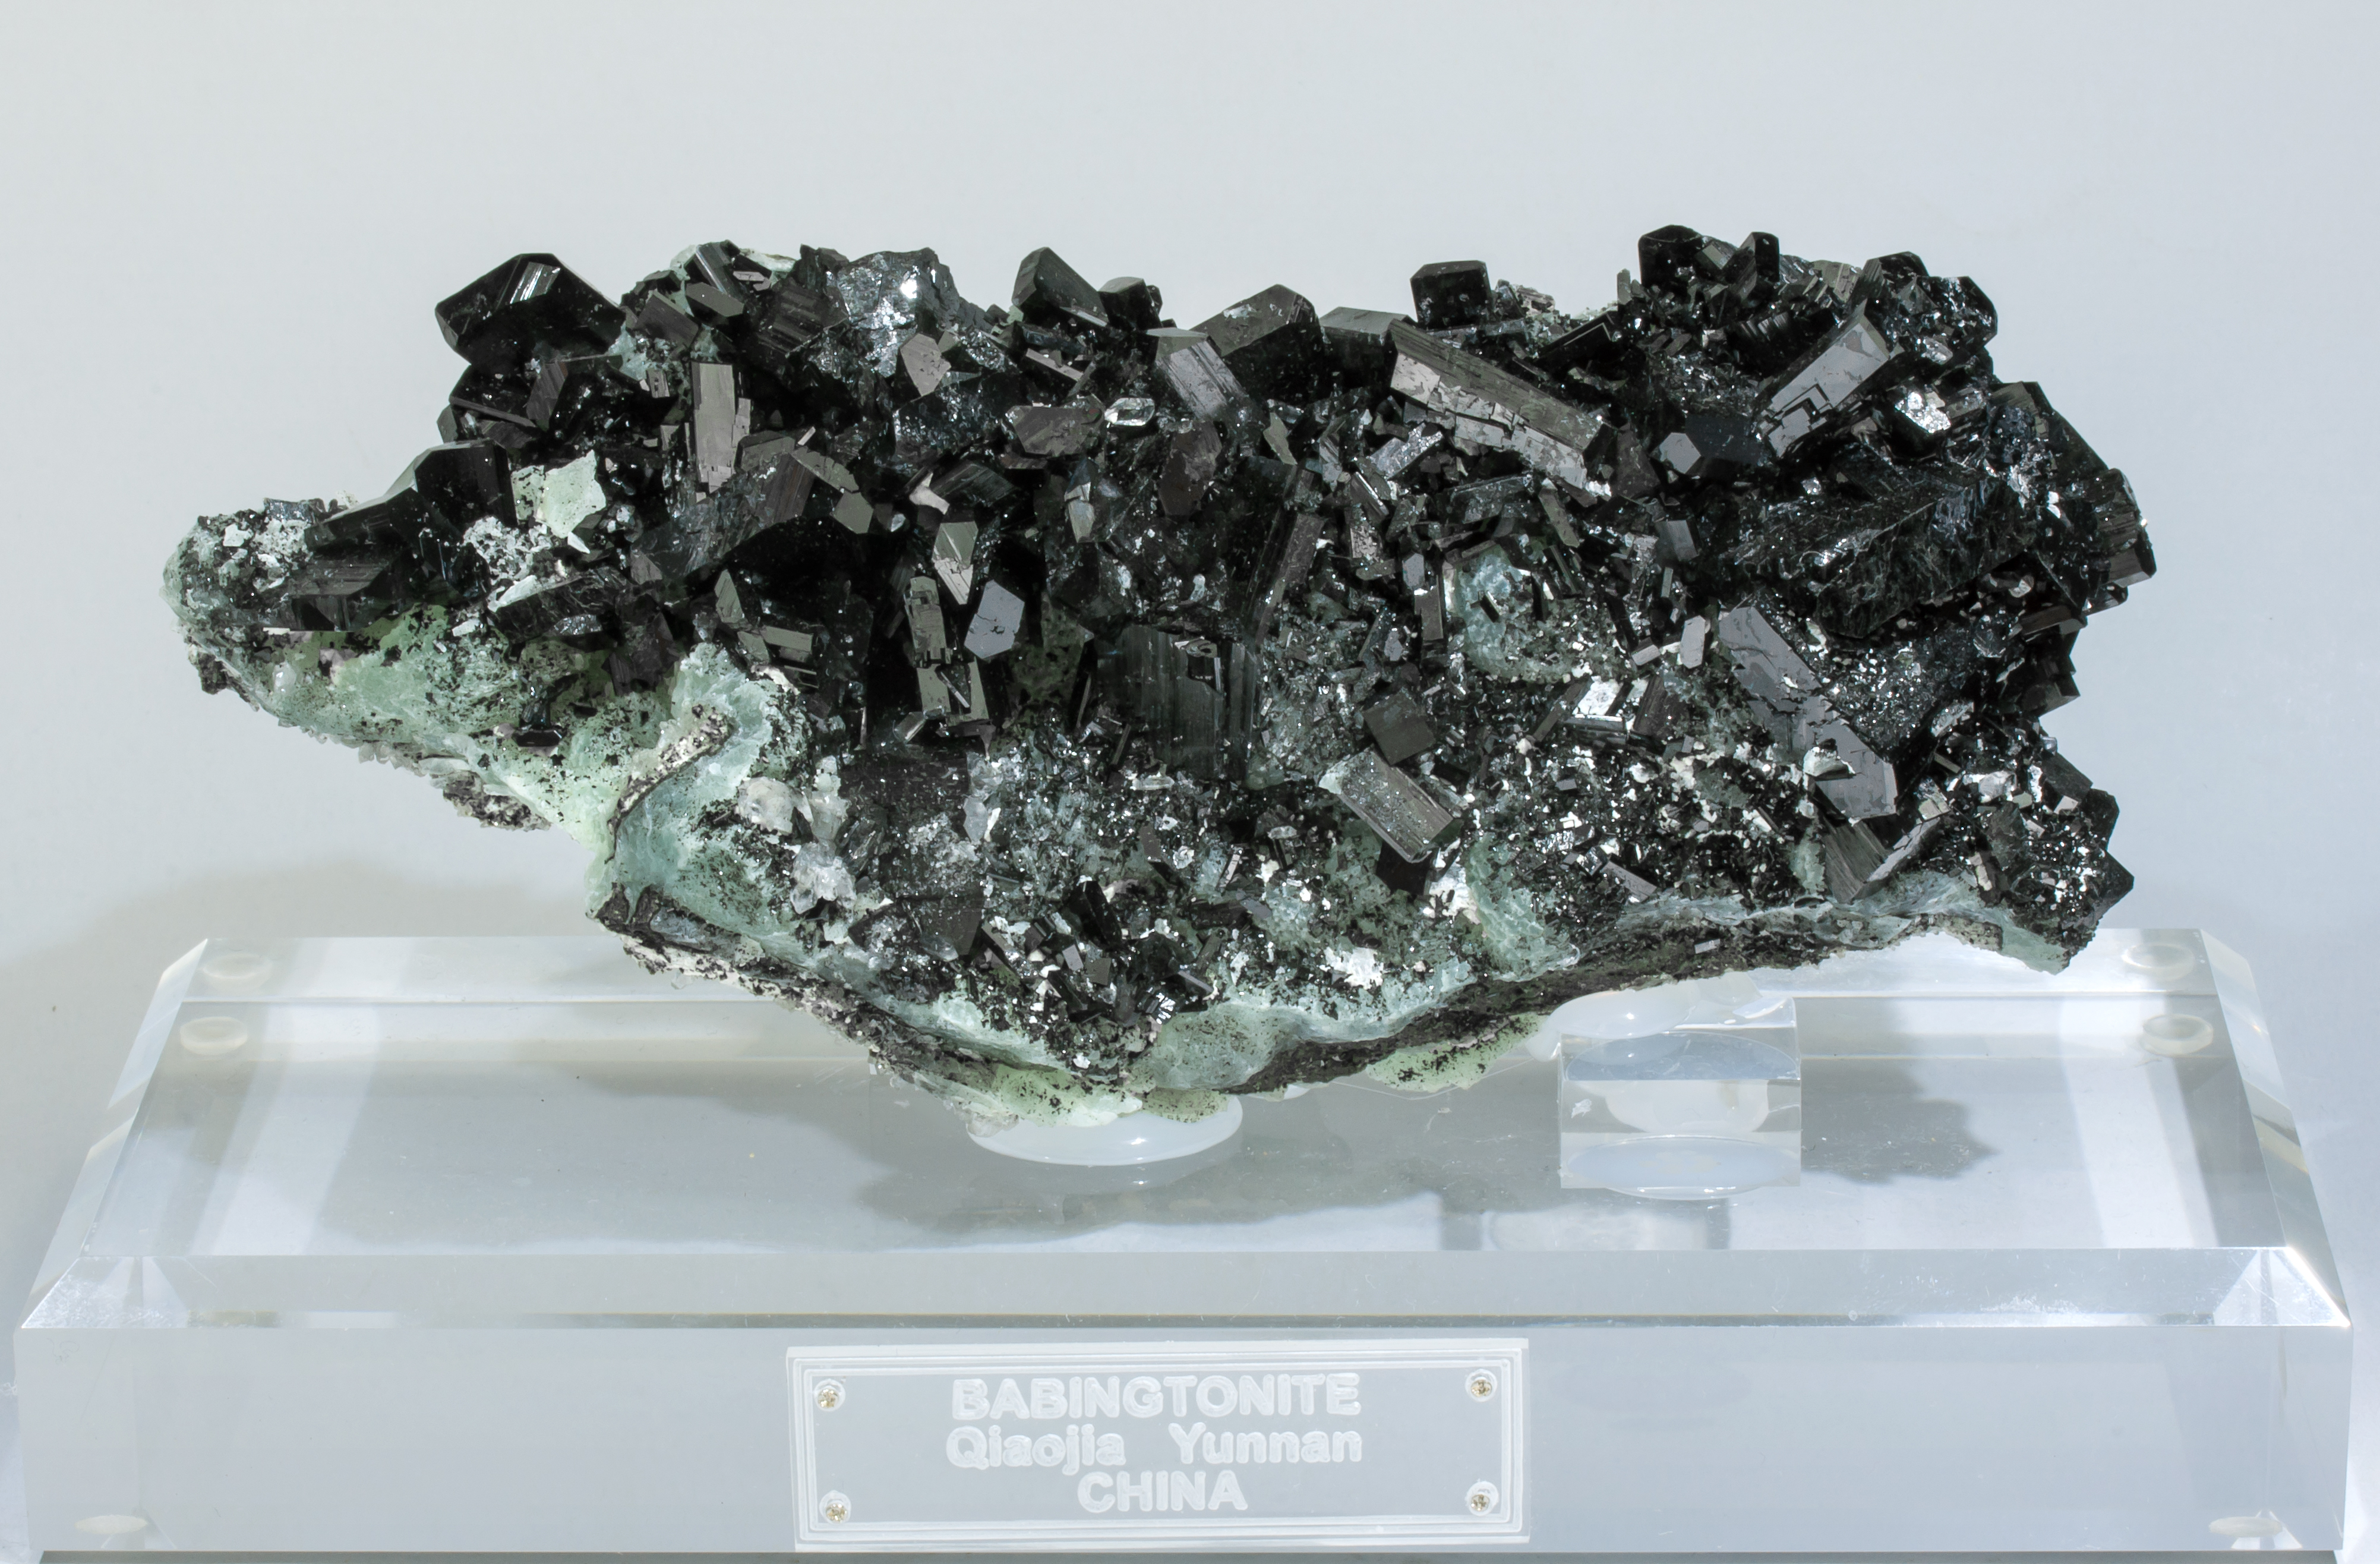 specimens/s_imagesR3/Babingtonite-TA98R3fp.jpg